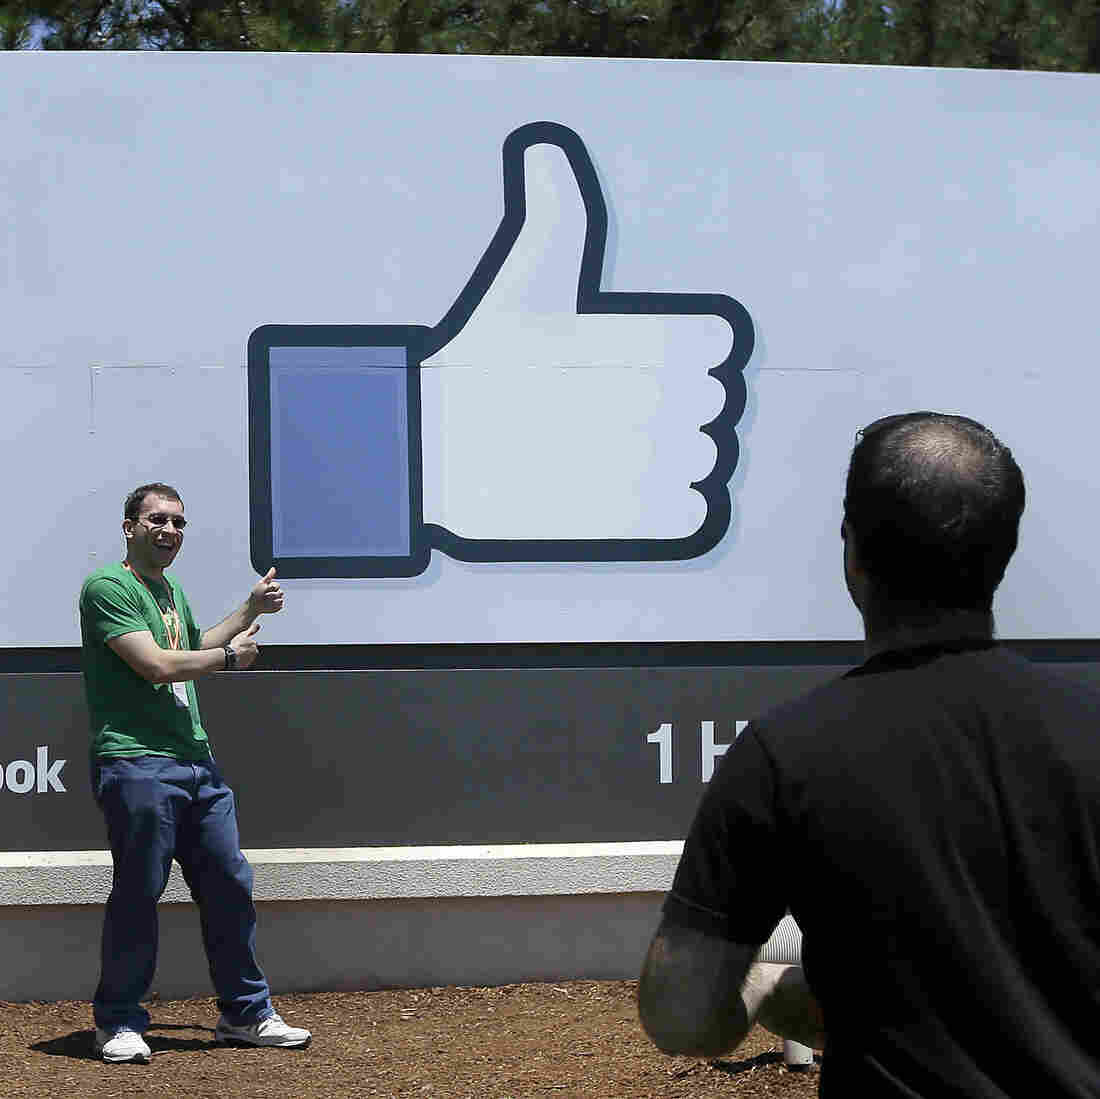 Facebook Scientists Alter News Feeds, Find Emotions Are Affected By It